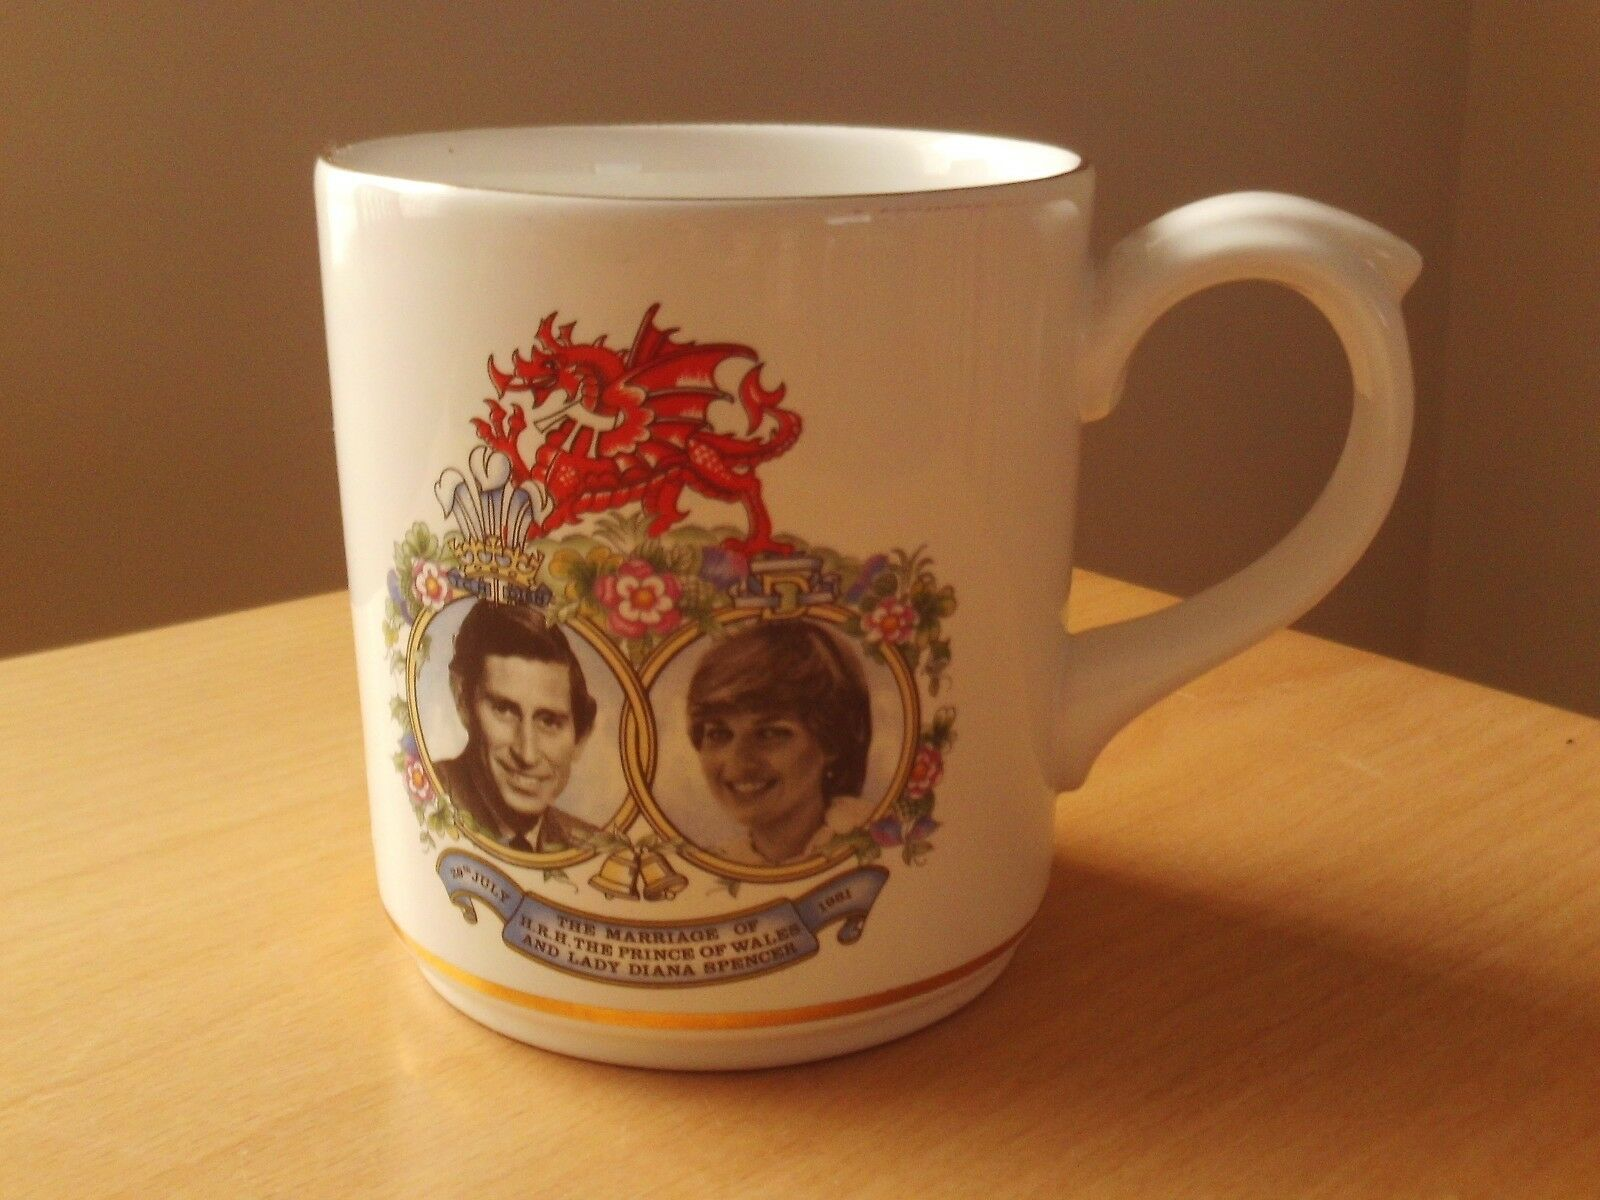 Vintage Poole Pottery Commemorative Mug Royal Wedding of Charles and Diana 1981.